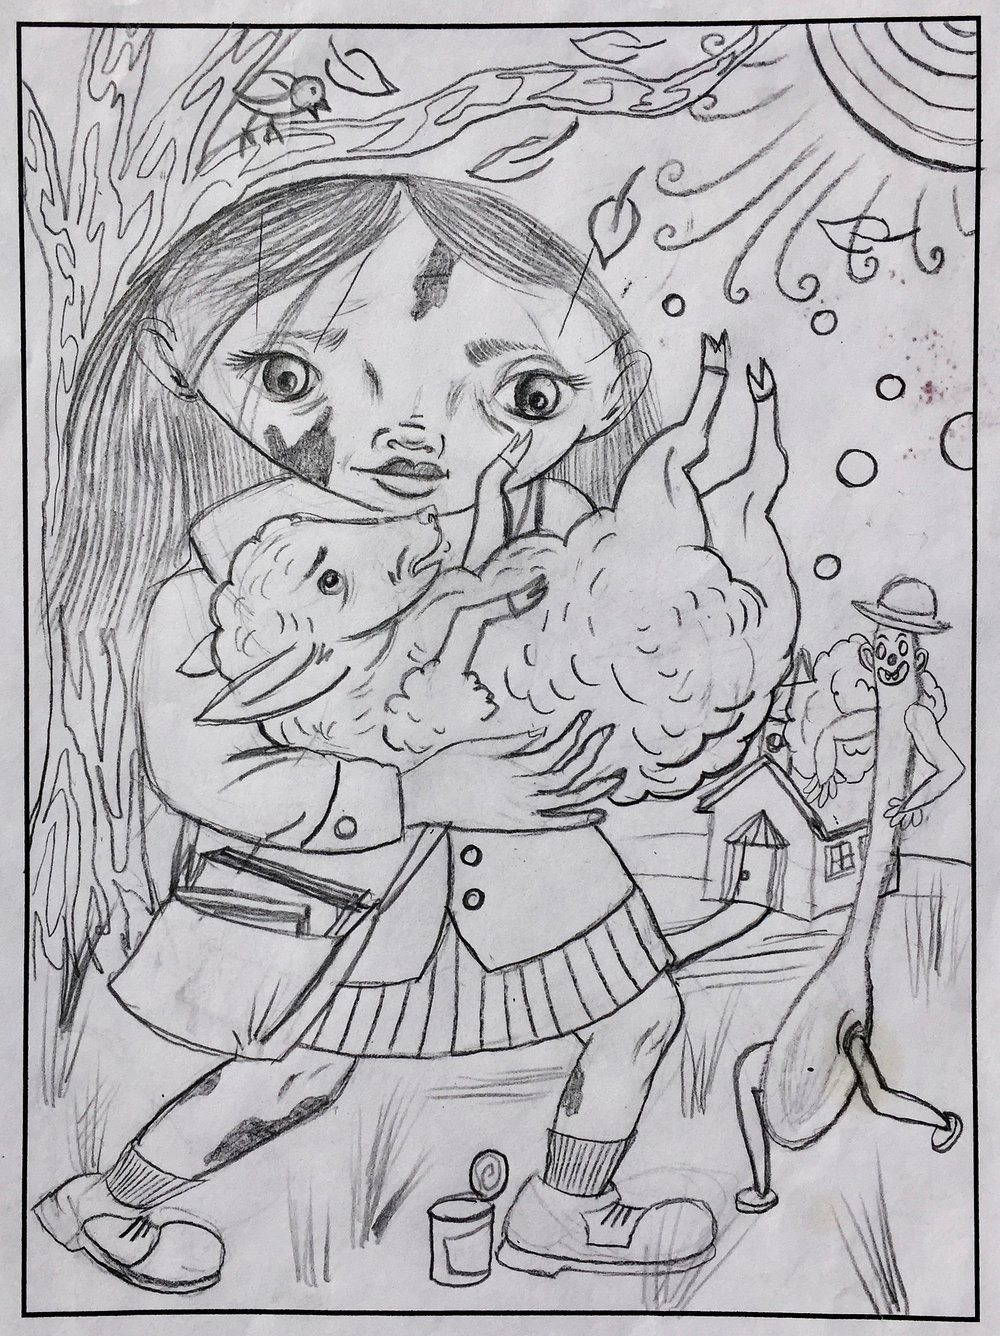 Untitled  , (Curds Girl with Sheep)   Graphite on paper  2003  6.5 x 8.75 In  $800.00